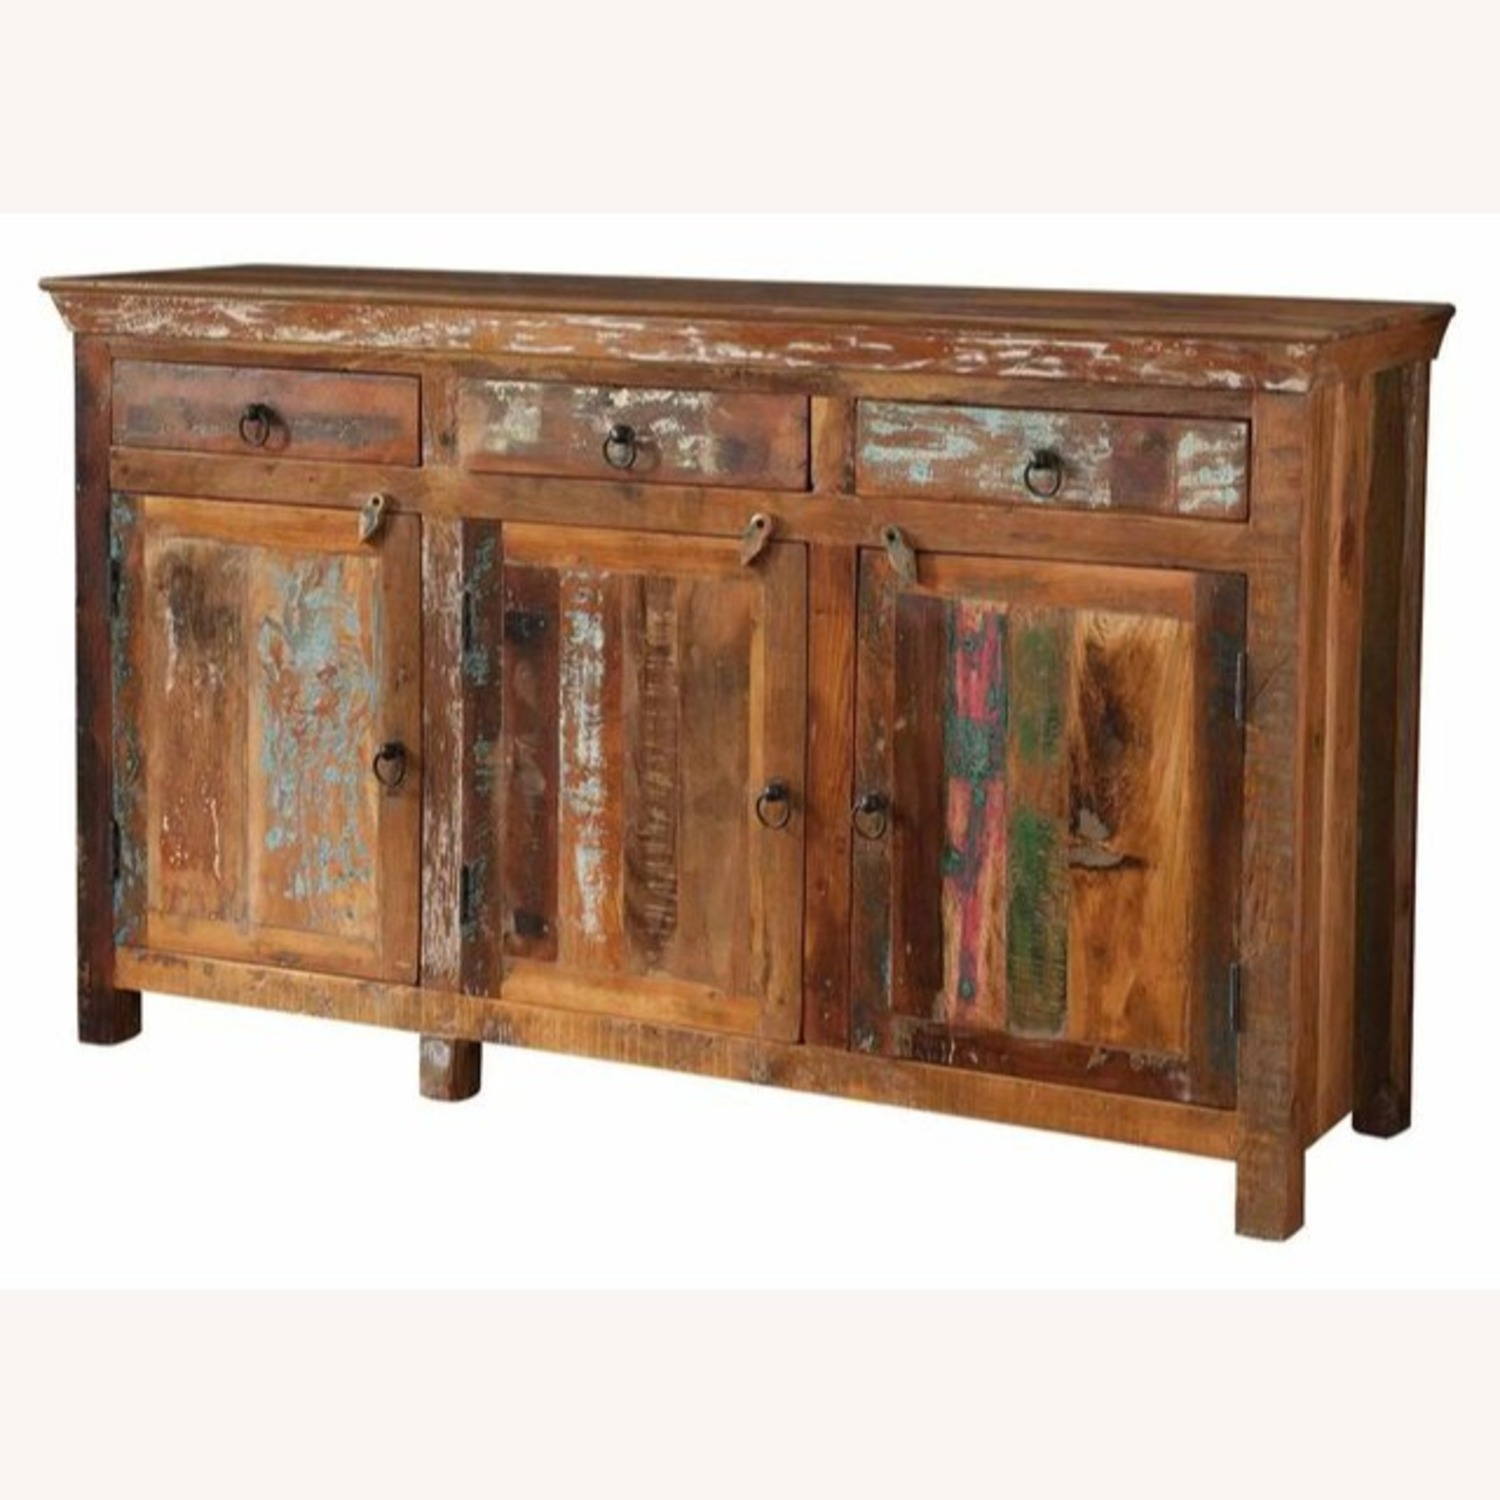 Accent Cabinet In Reclaimed Wood Finish - image-1